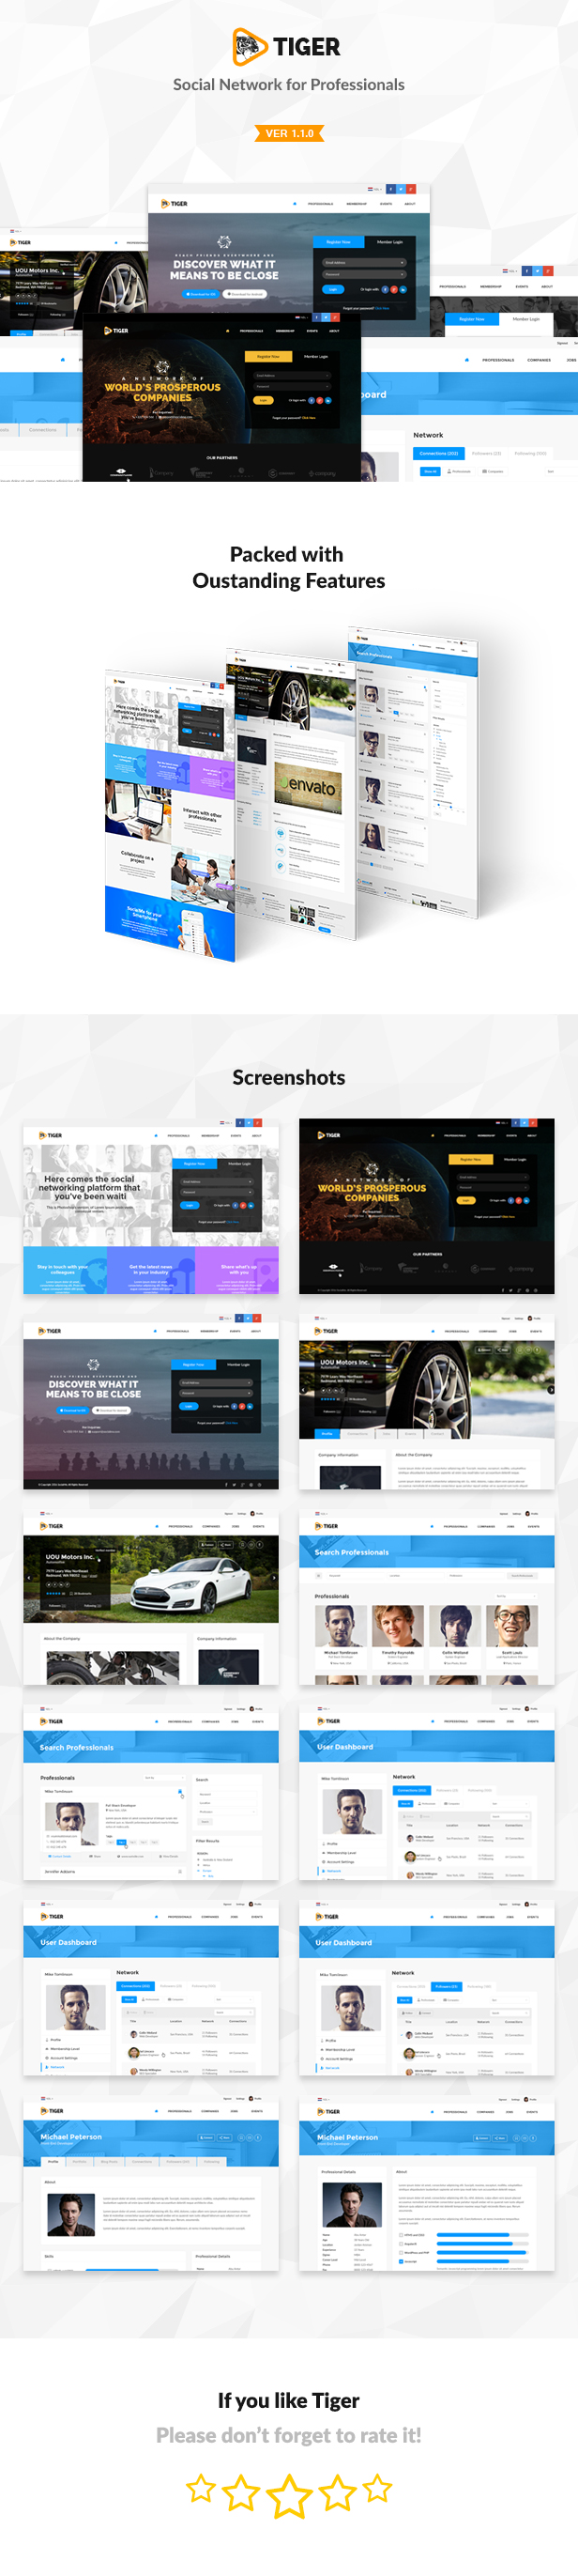 Tiger Social Network Theme For Companies Professionals By